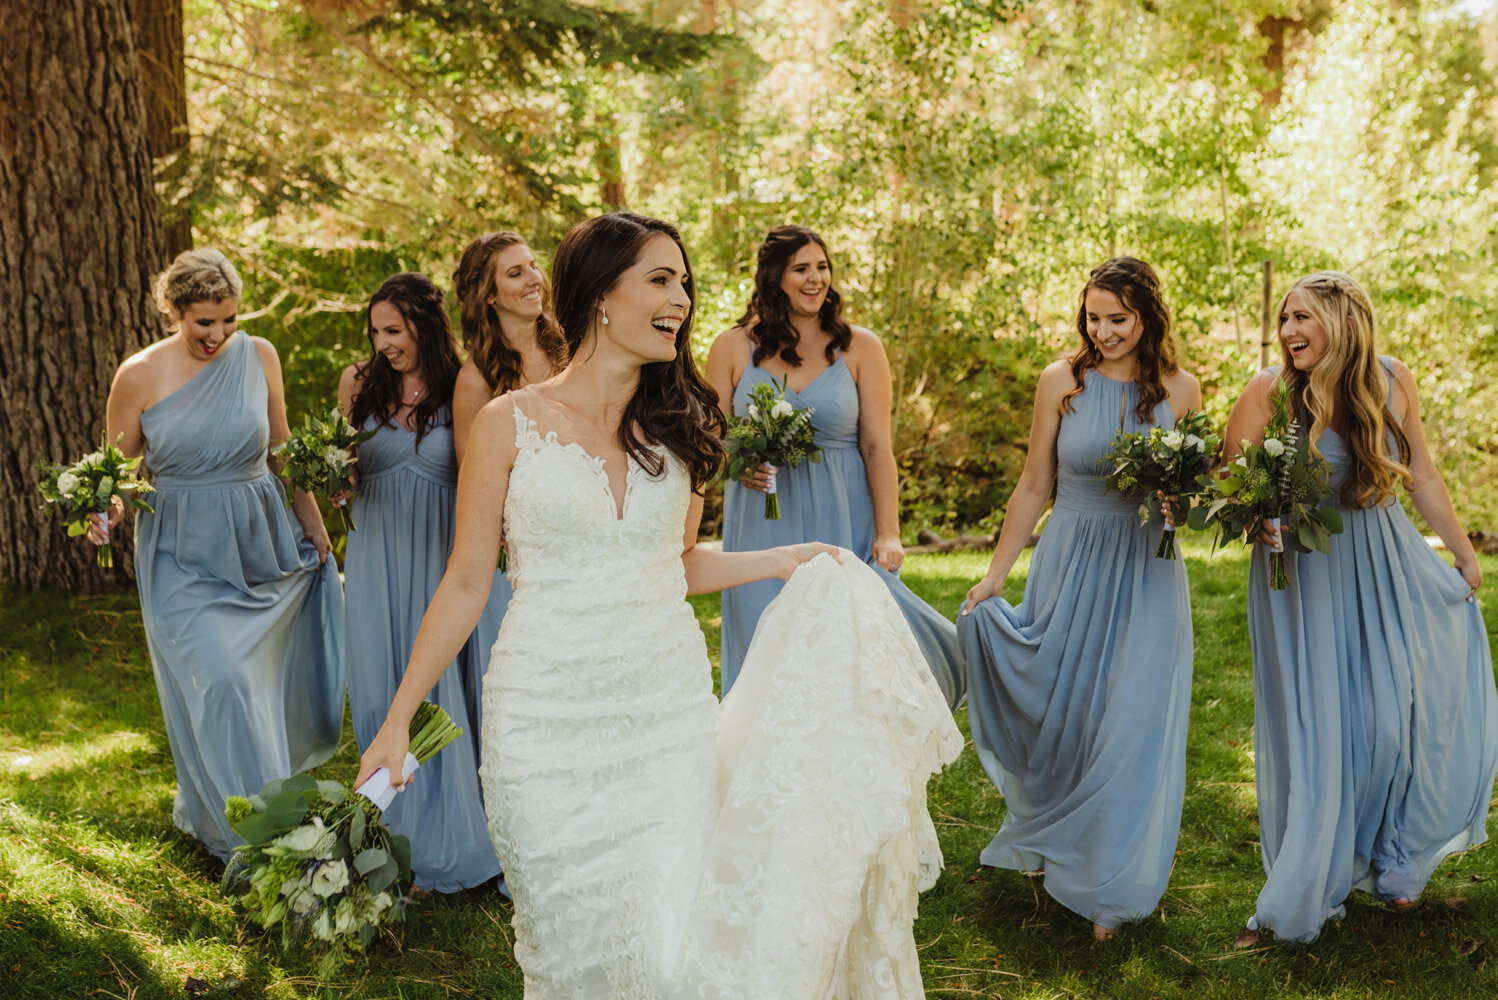 The Chateau Incline Village Wedding, photo of bride and bridesmaids in blue dresses